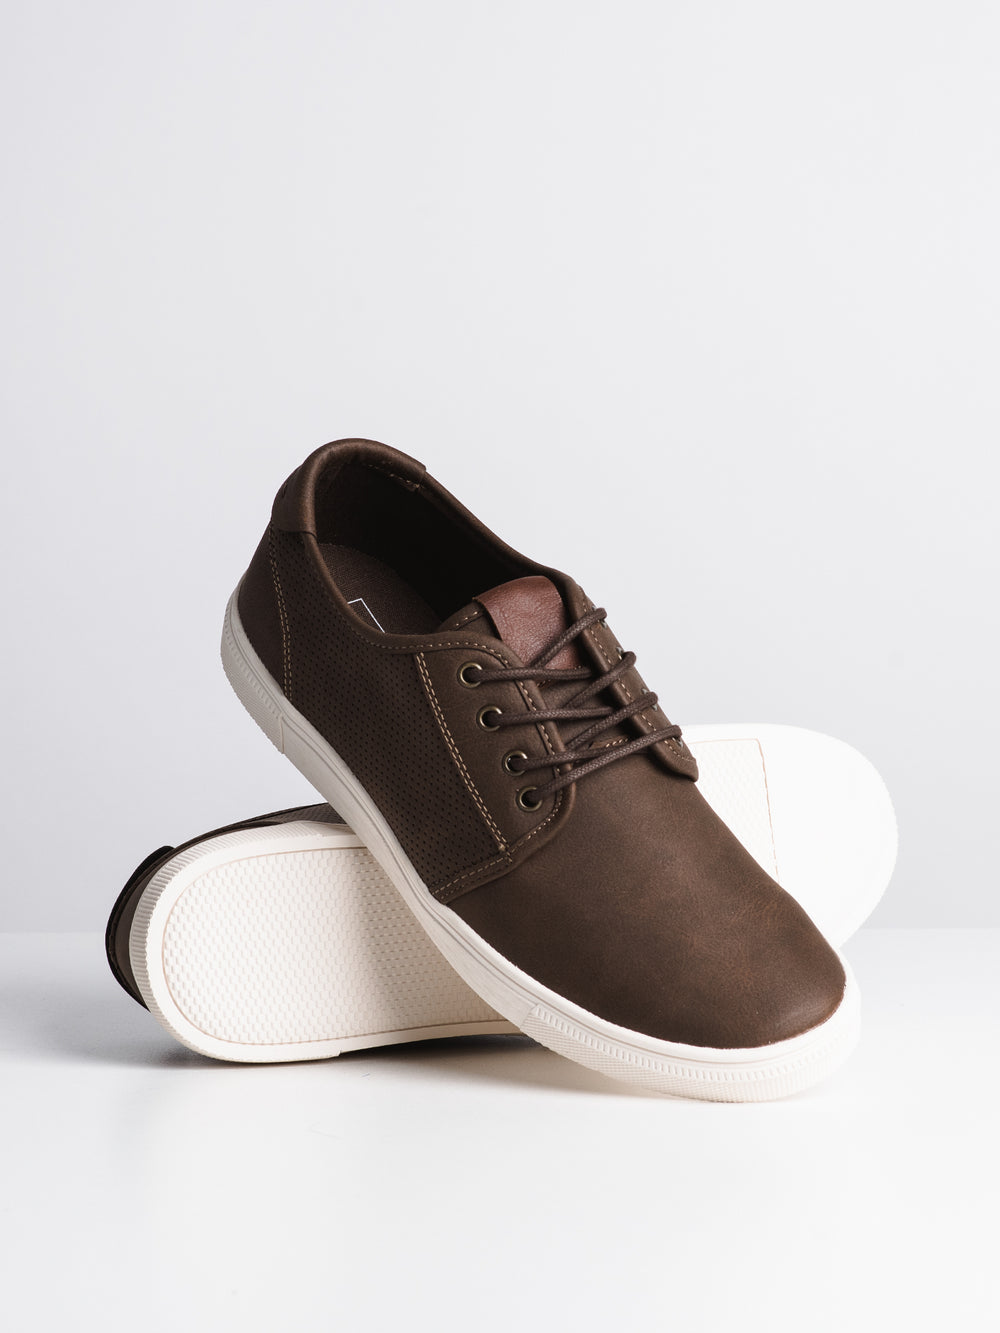 MENS COOPER - BROWN-D1